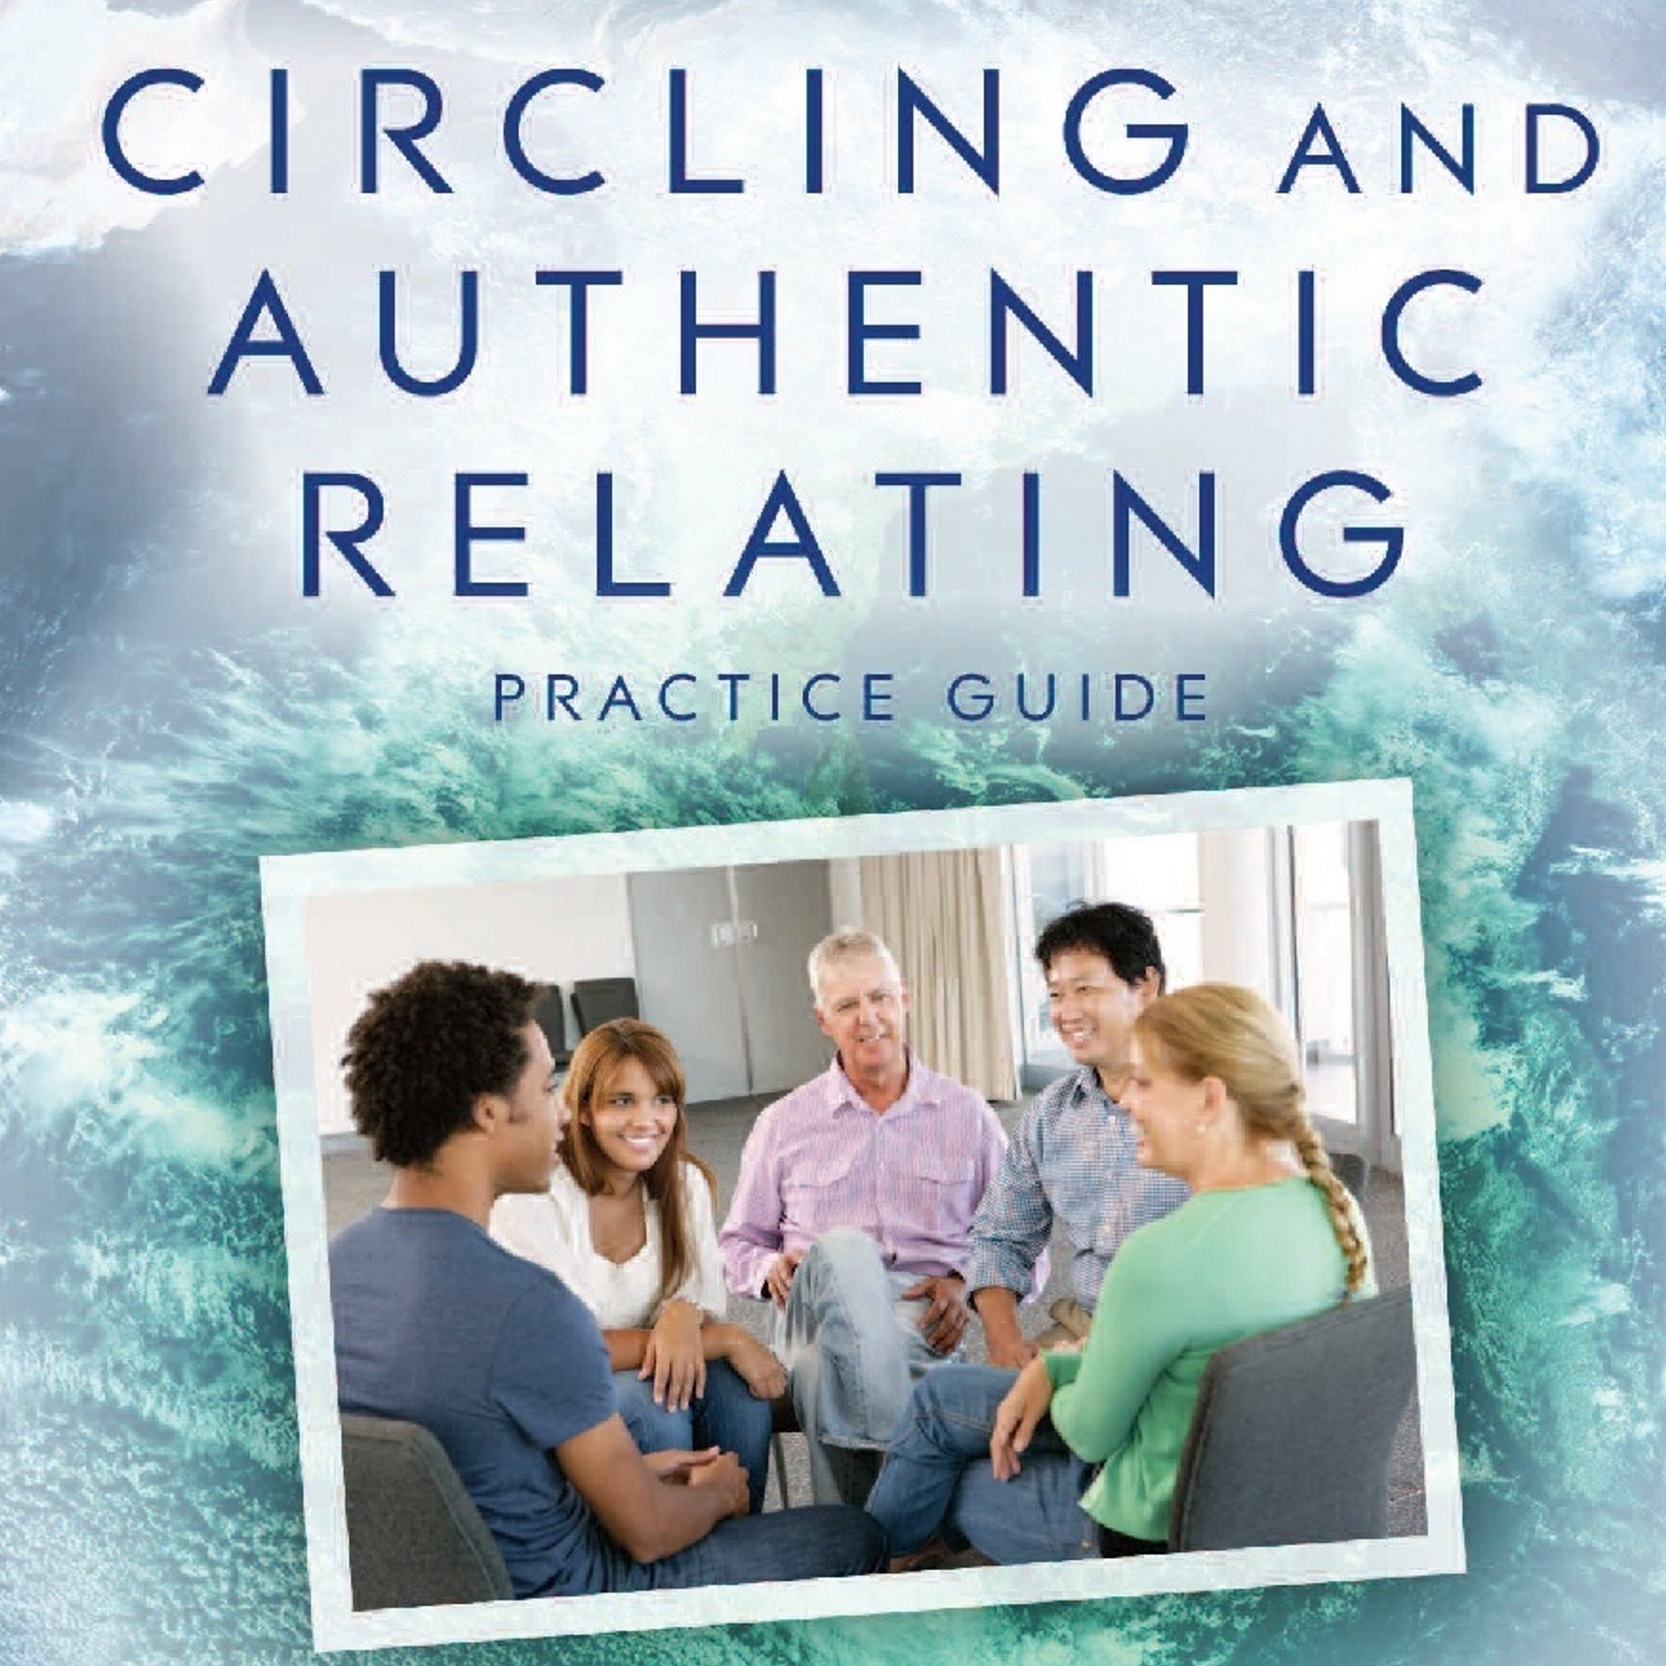 Circling and Authentic Relating Guide Podcast